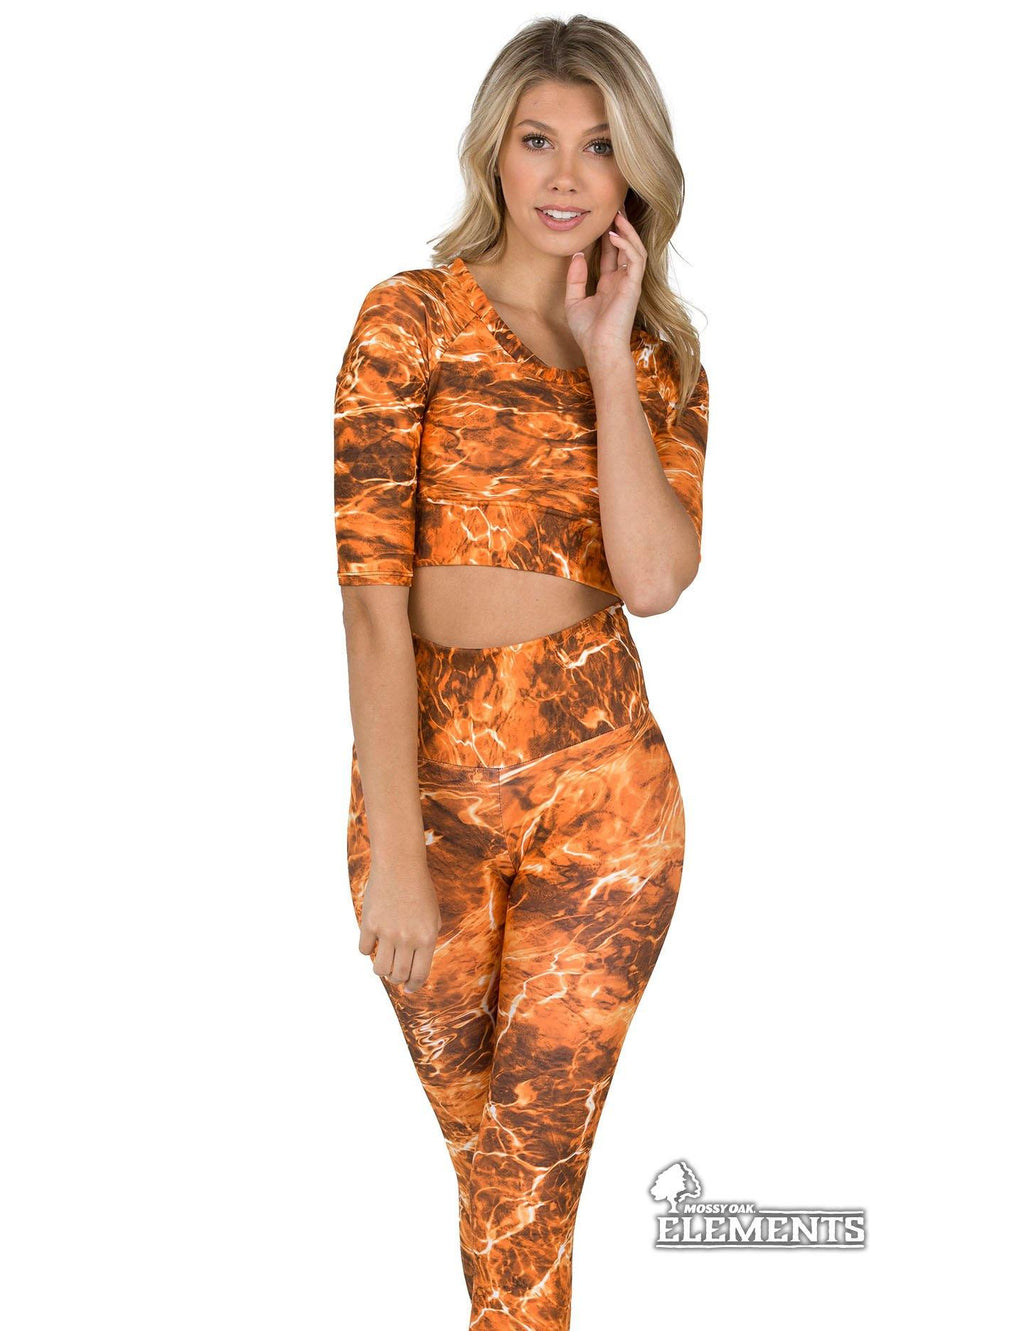 Apsara Cropped Top, Mossy Oak Elements Sunset